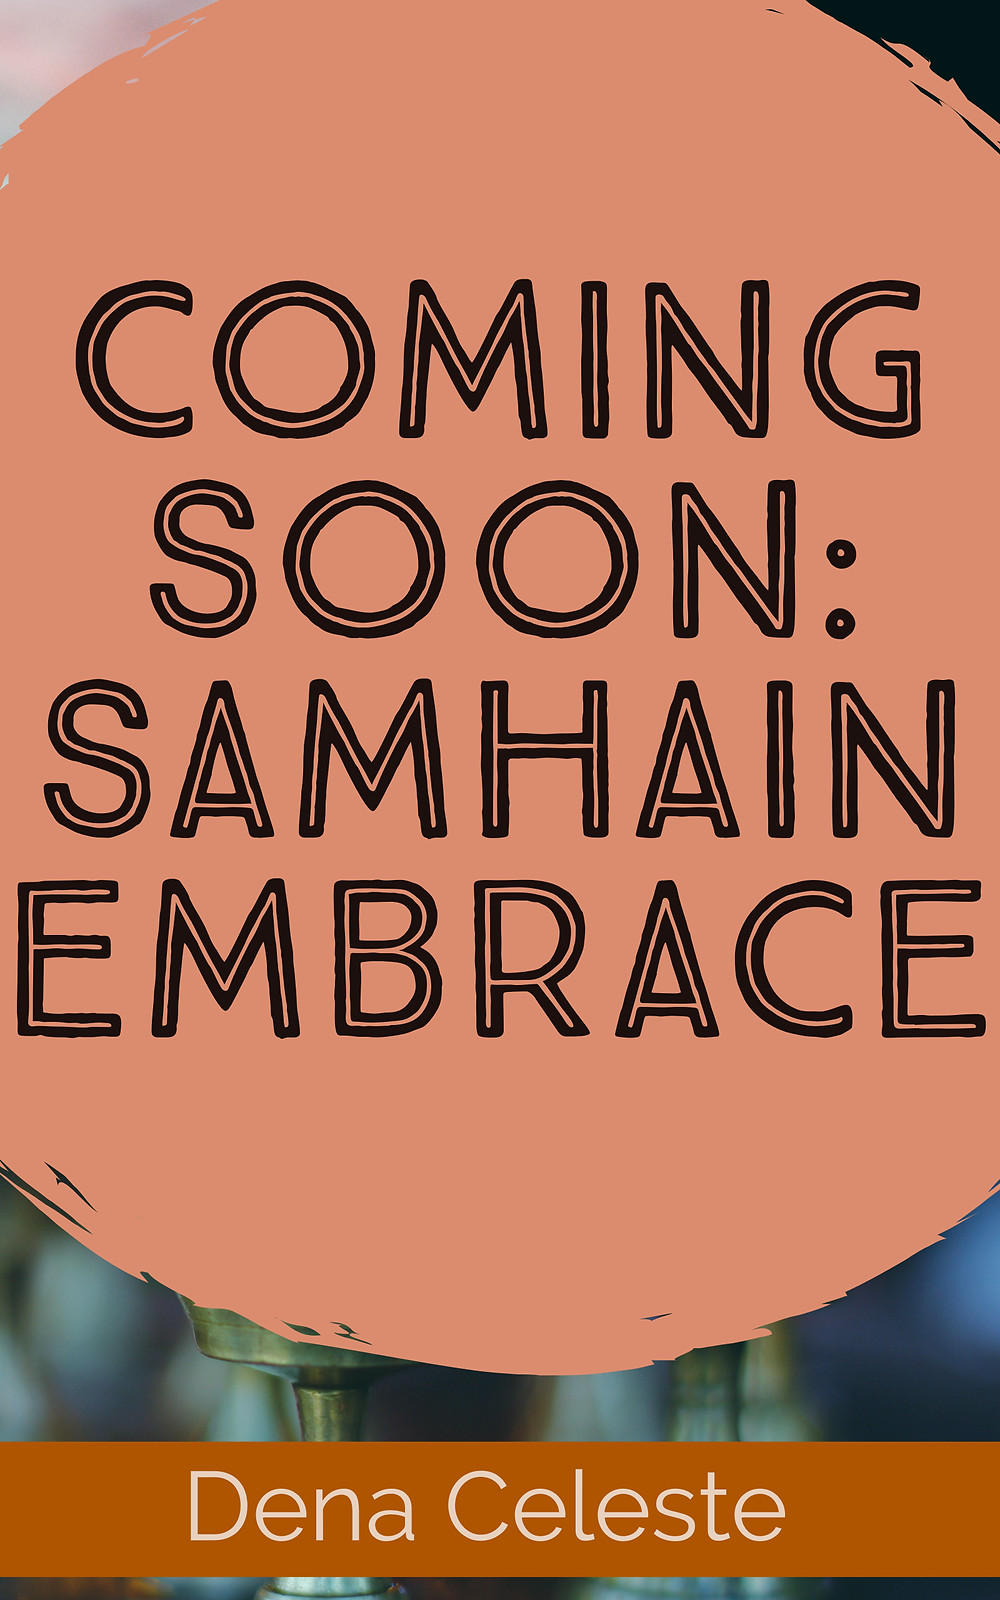 a book cover overlaid with an opaque orange circle that reads: coming soon samhain embrace